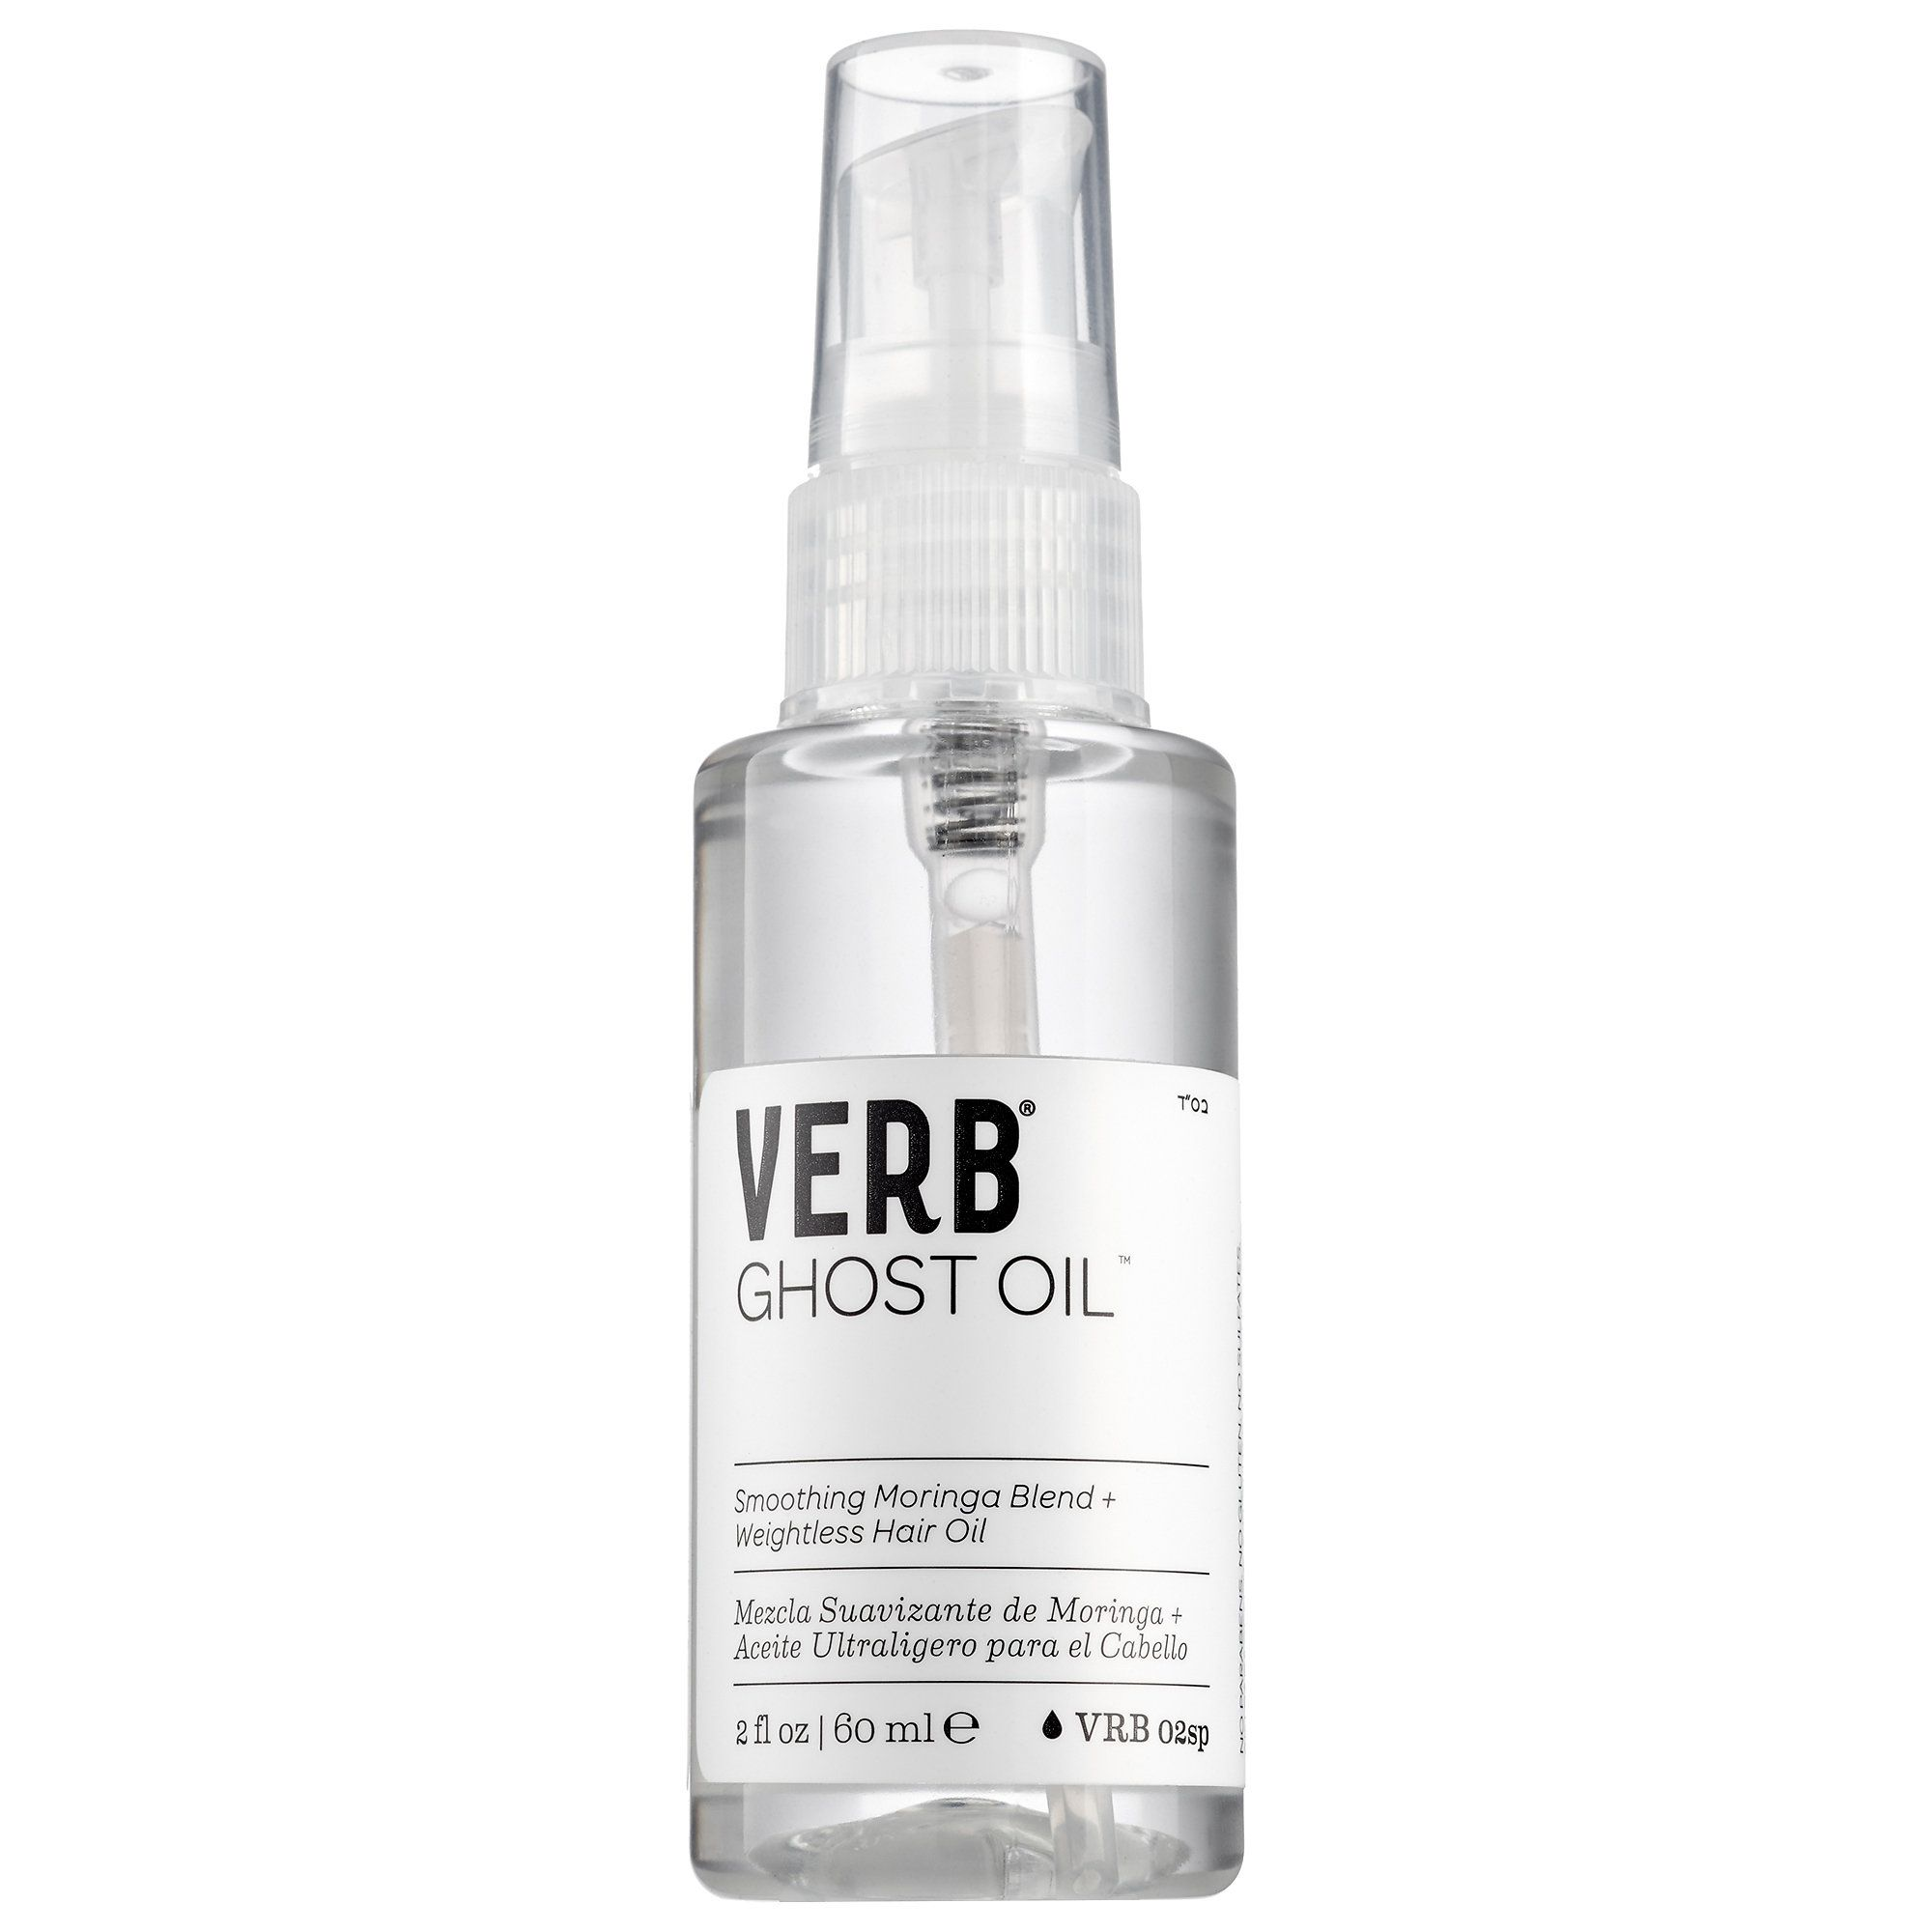 This oil is a must have This oil seriously makes my hair look like